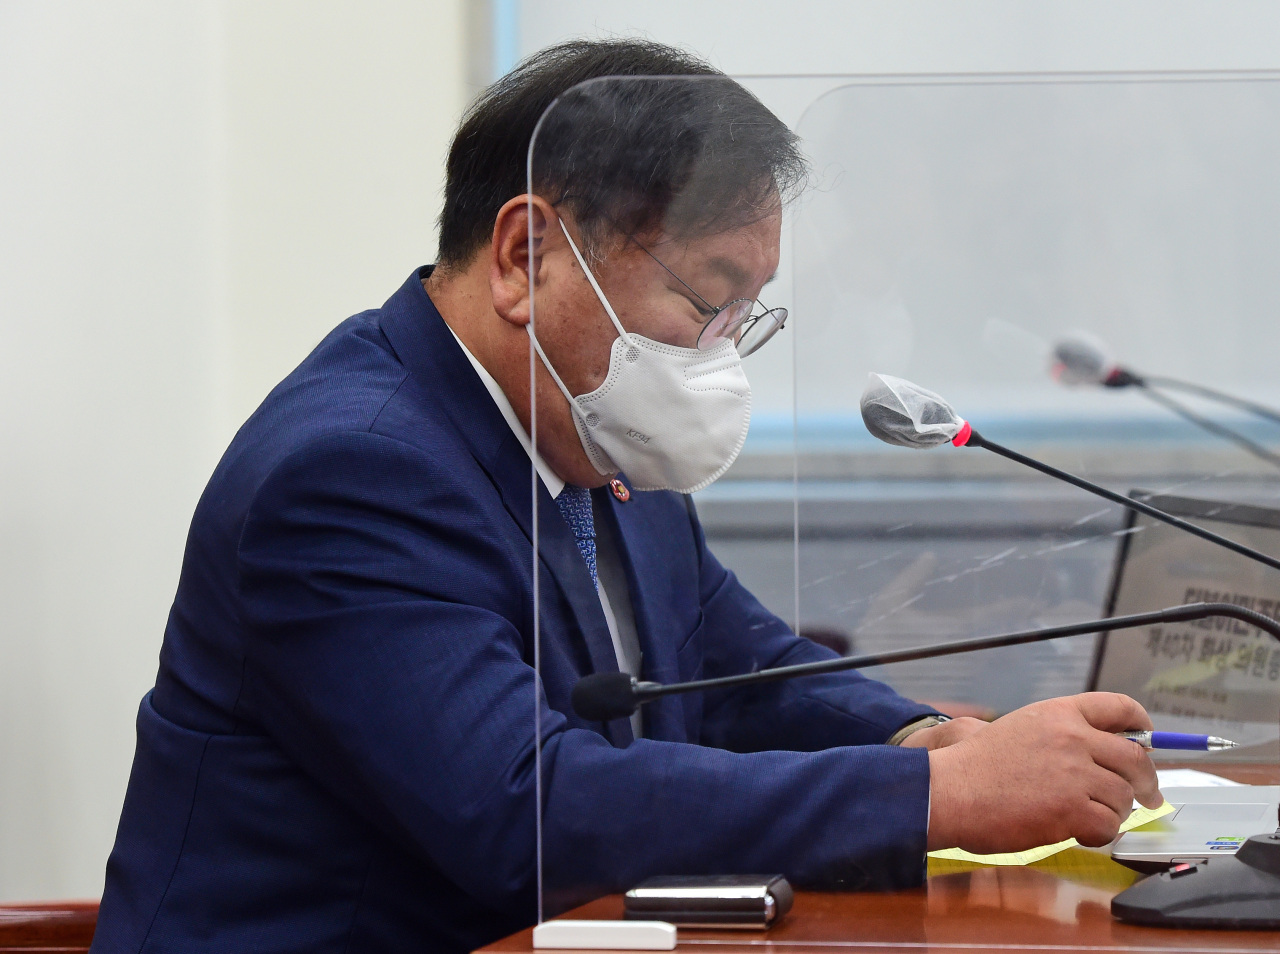 Kim Tae-nyeon, acting chief and floor leader of the ruling Democratic Party, attends an emergency meeting of the party's lawmakers at the National Assembly on Thursday. (Yonhap)